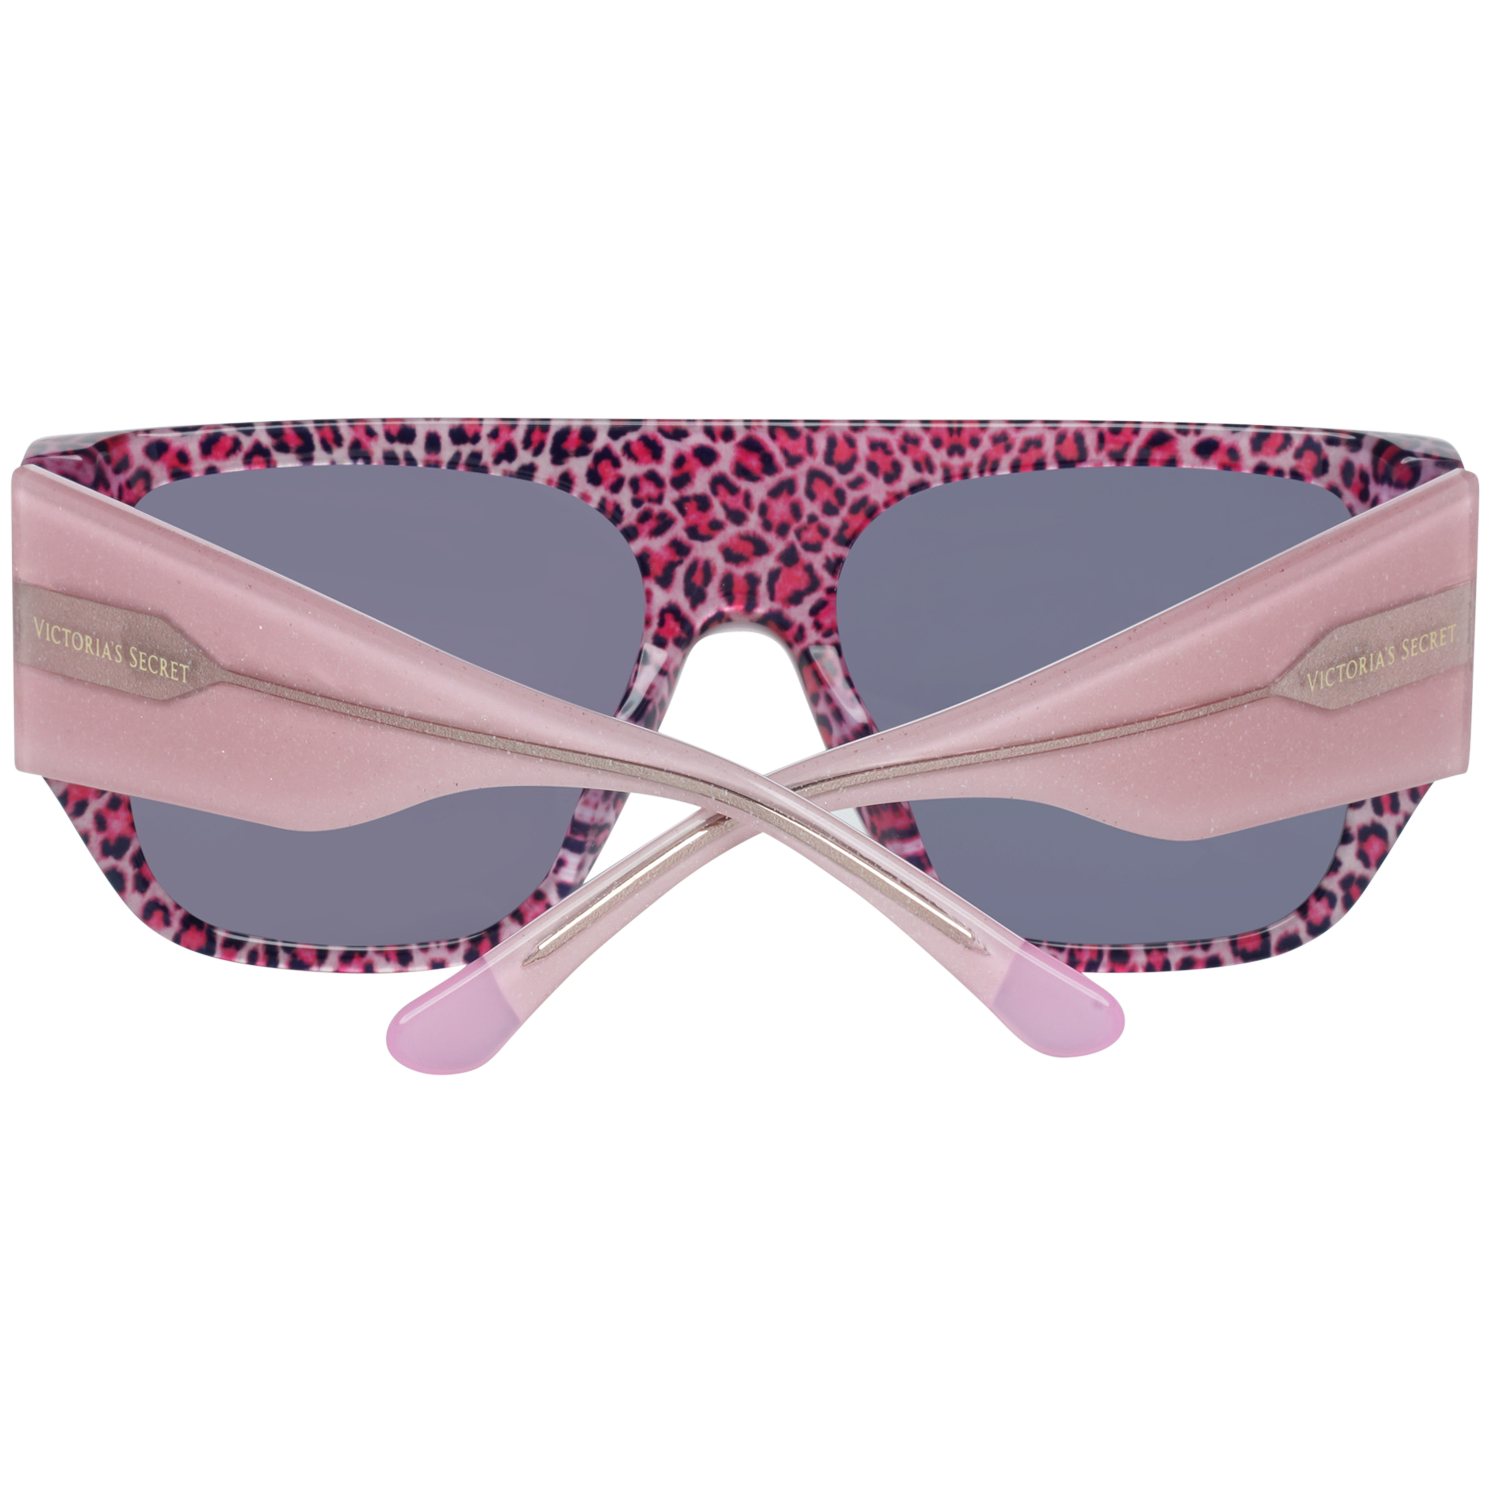 Victoria's Secret Sunglasses VS0007 77A 55 Women Pink